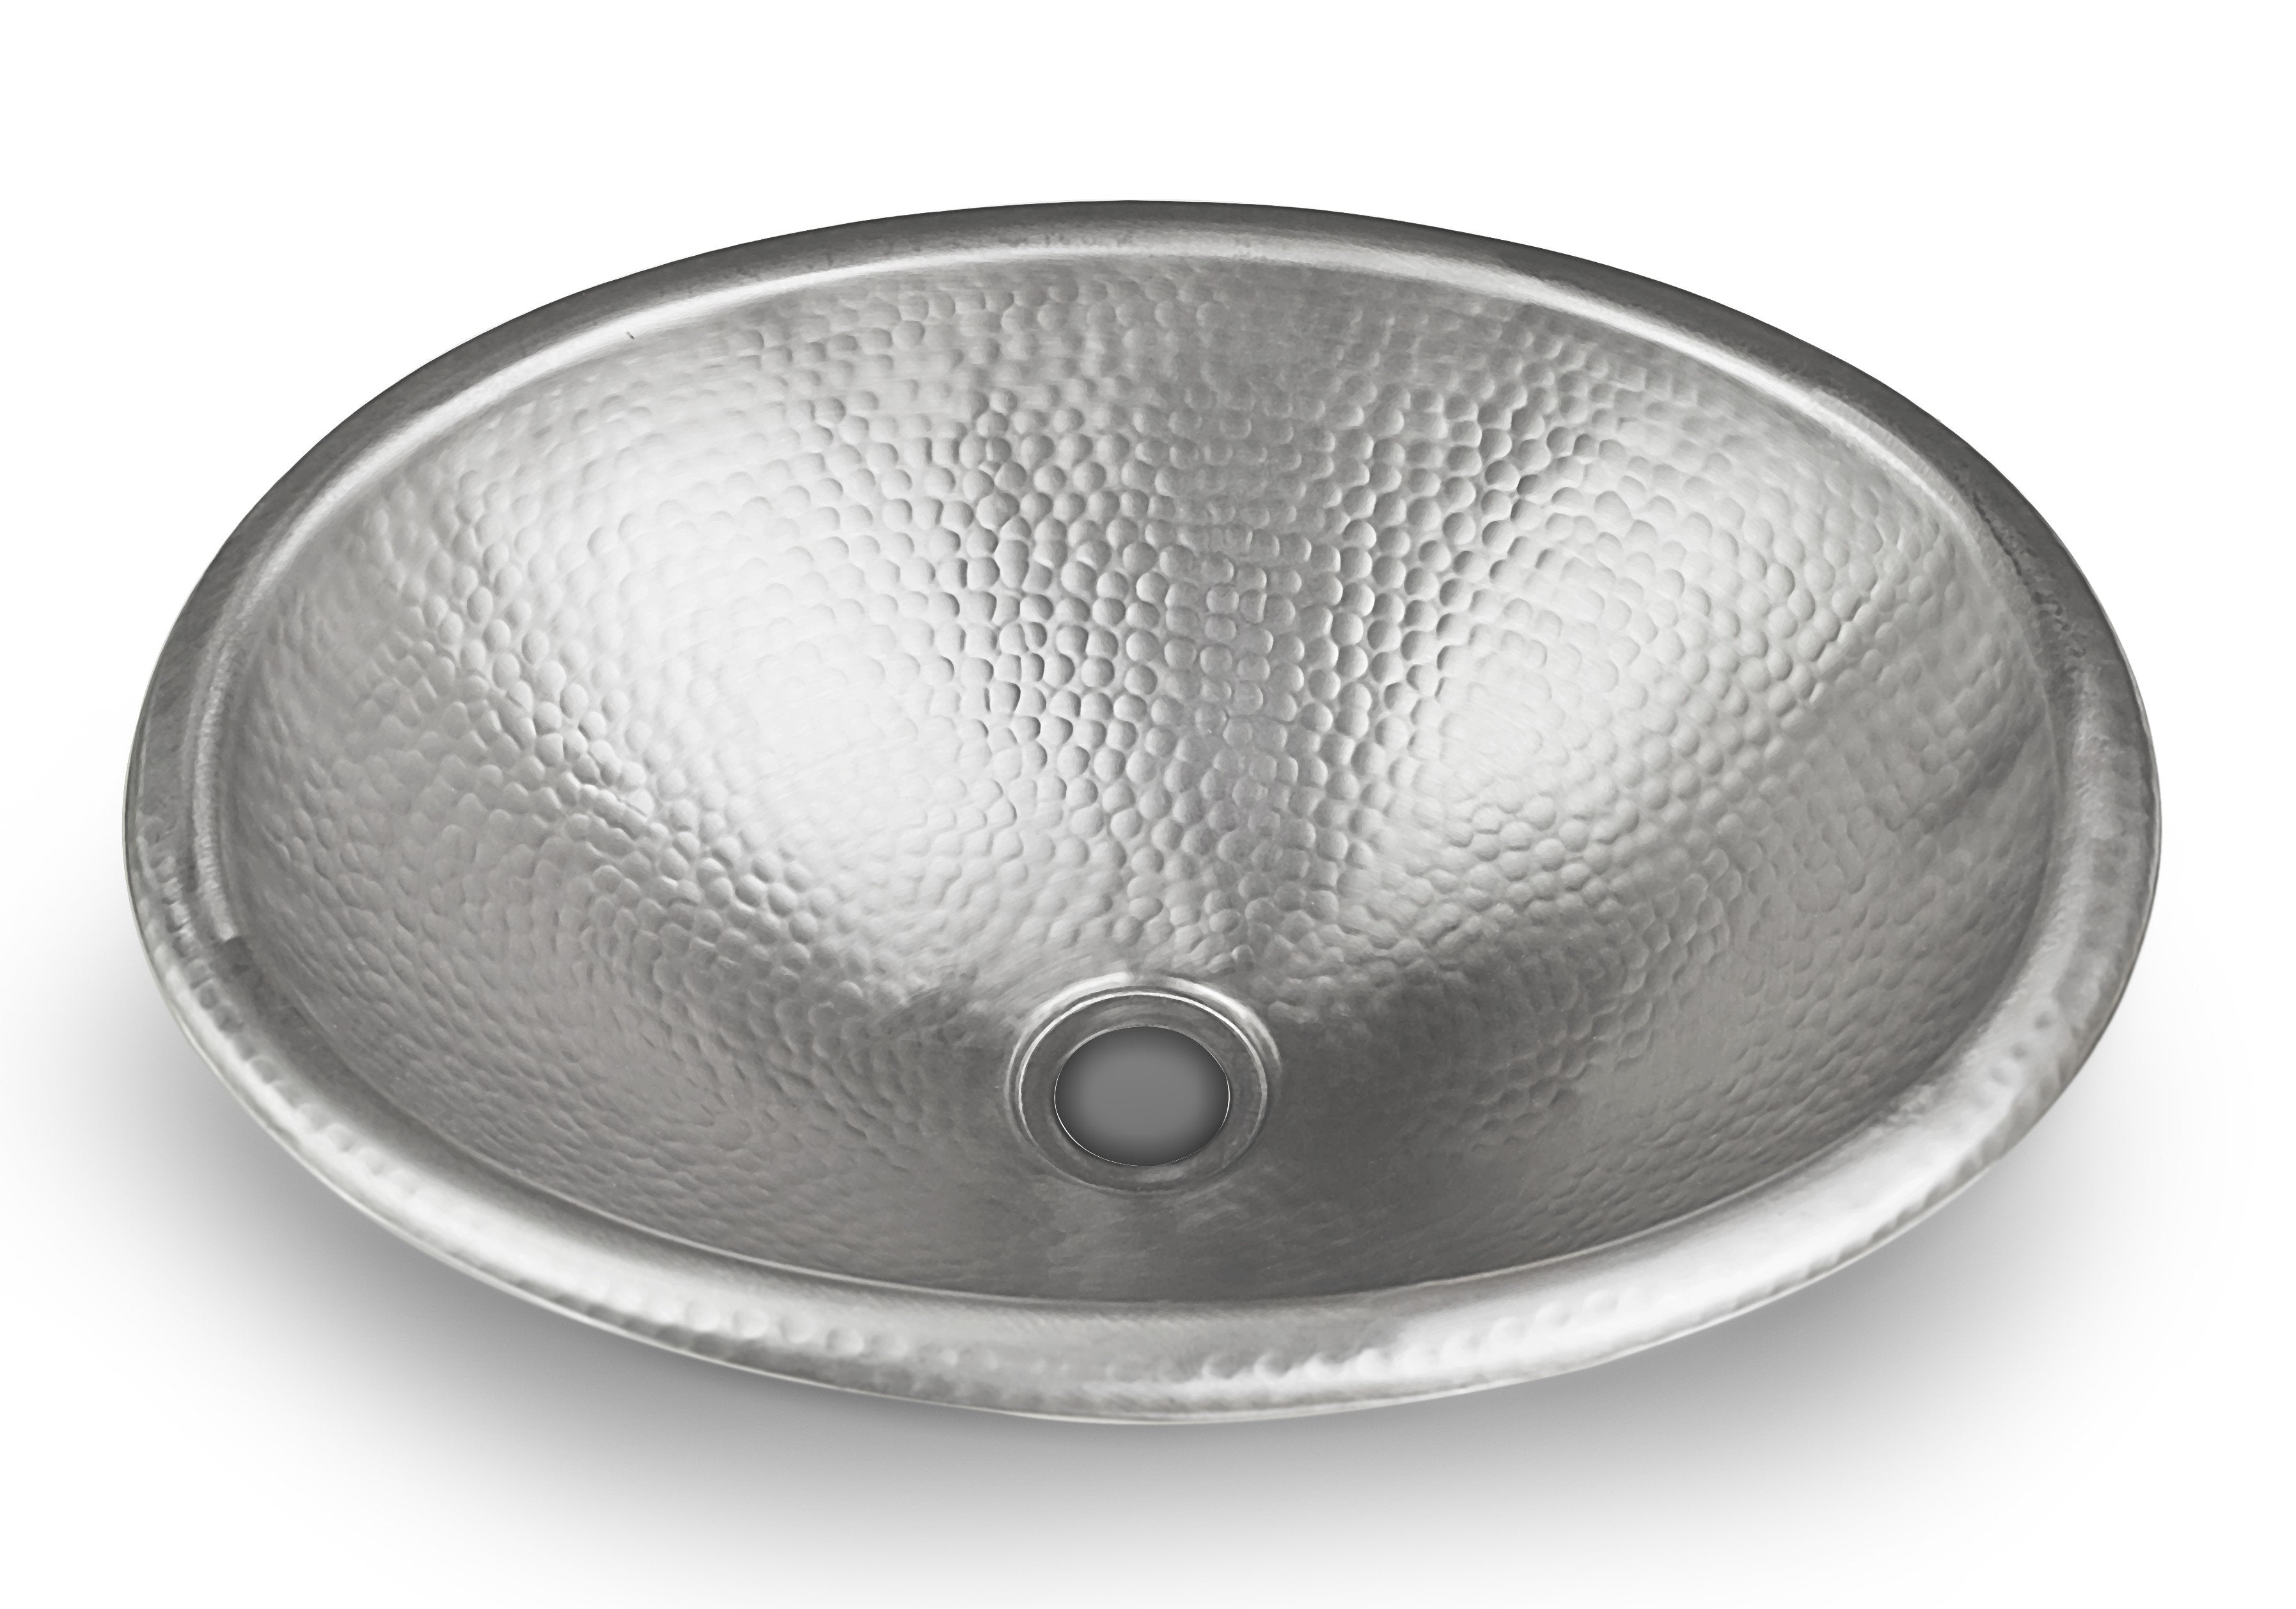 Monarch Hand Hammered Nickel Oval Drop-In Bathroom Sink – Monarch on oval porcelain bathroom sinks, copper drop sink in bathroom, in drop sink kohler bathroom, oval sink sizes, oval undermount bathroom sinks, oval vessel bathroom sinks, oval white sink, kohler sink wading pool bathroom,